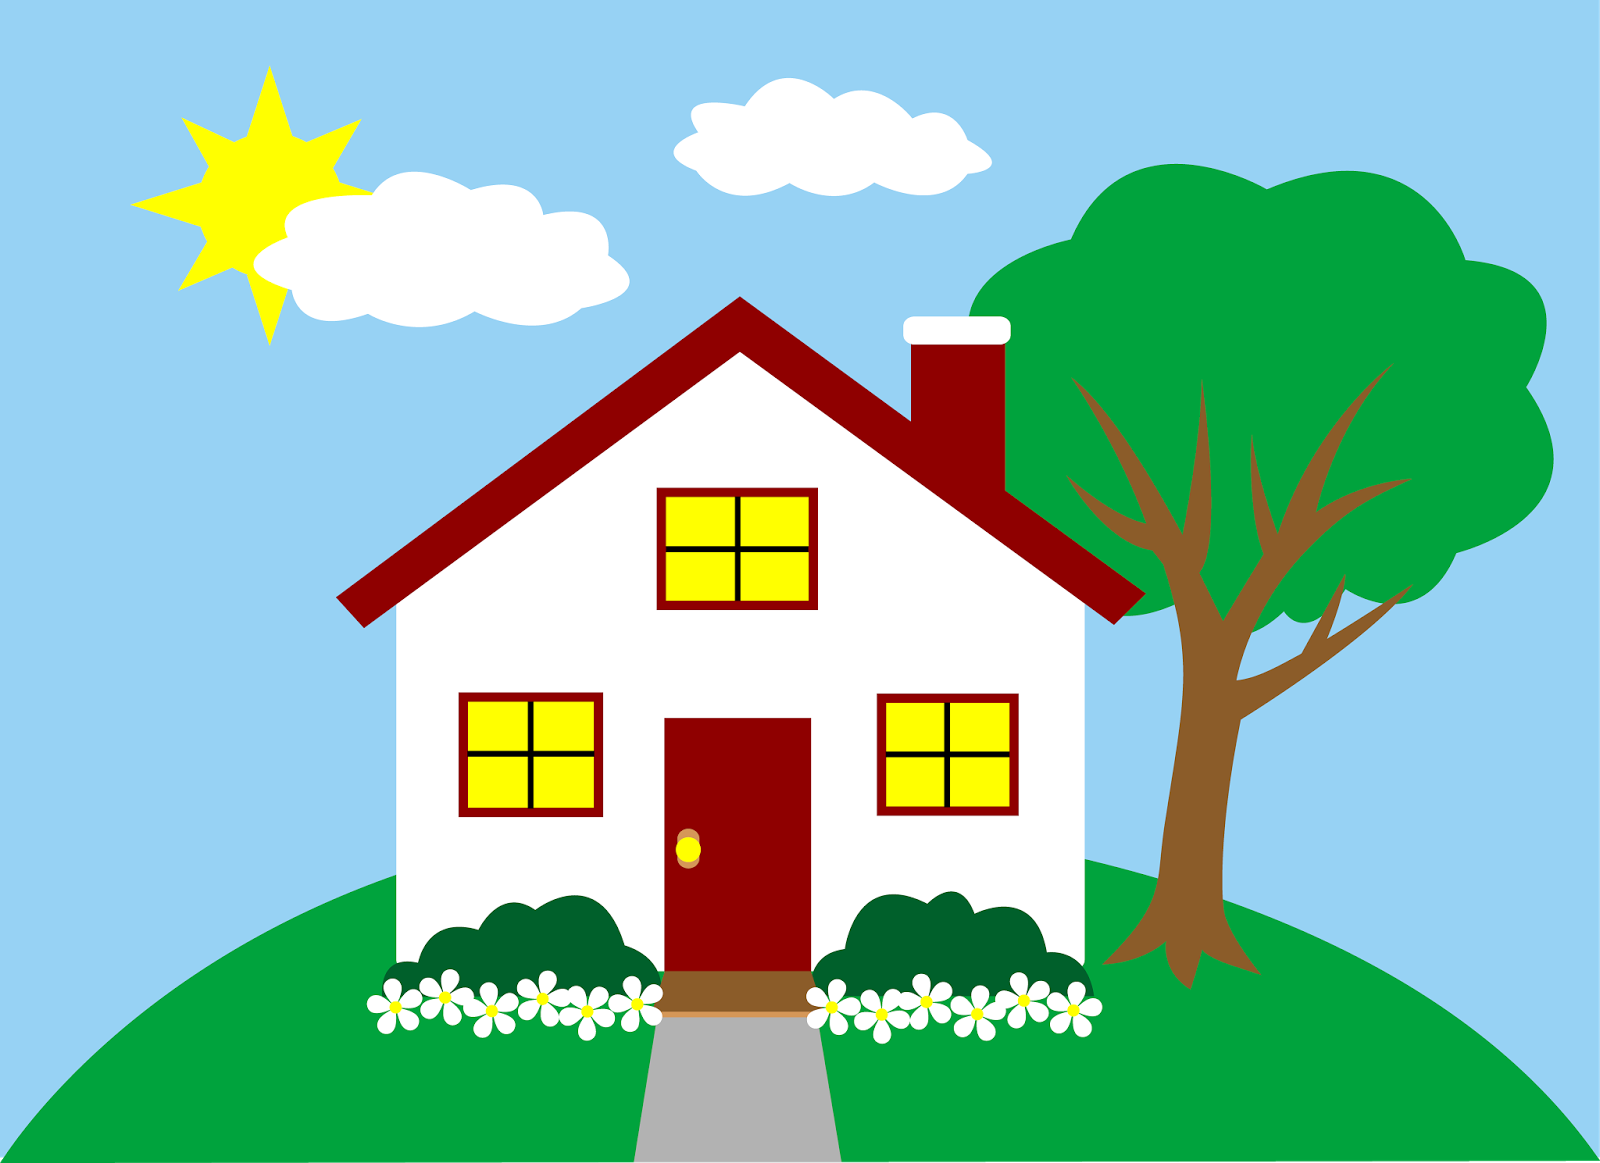 House Clipart Images--8